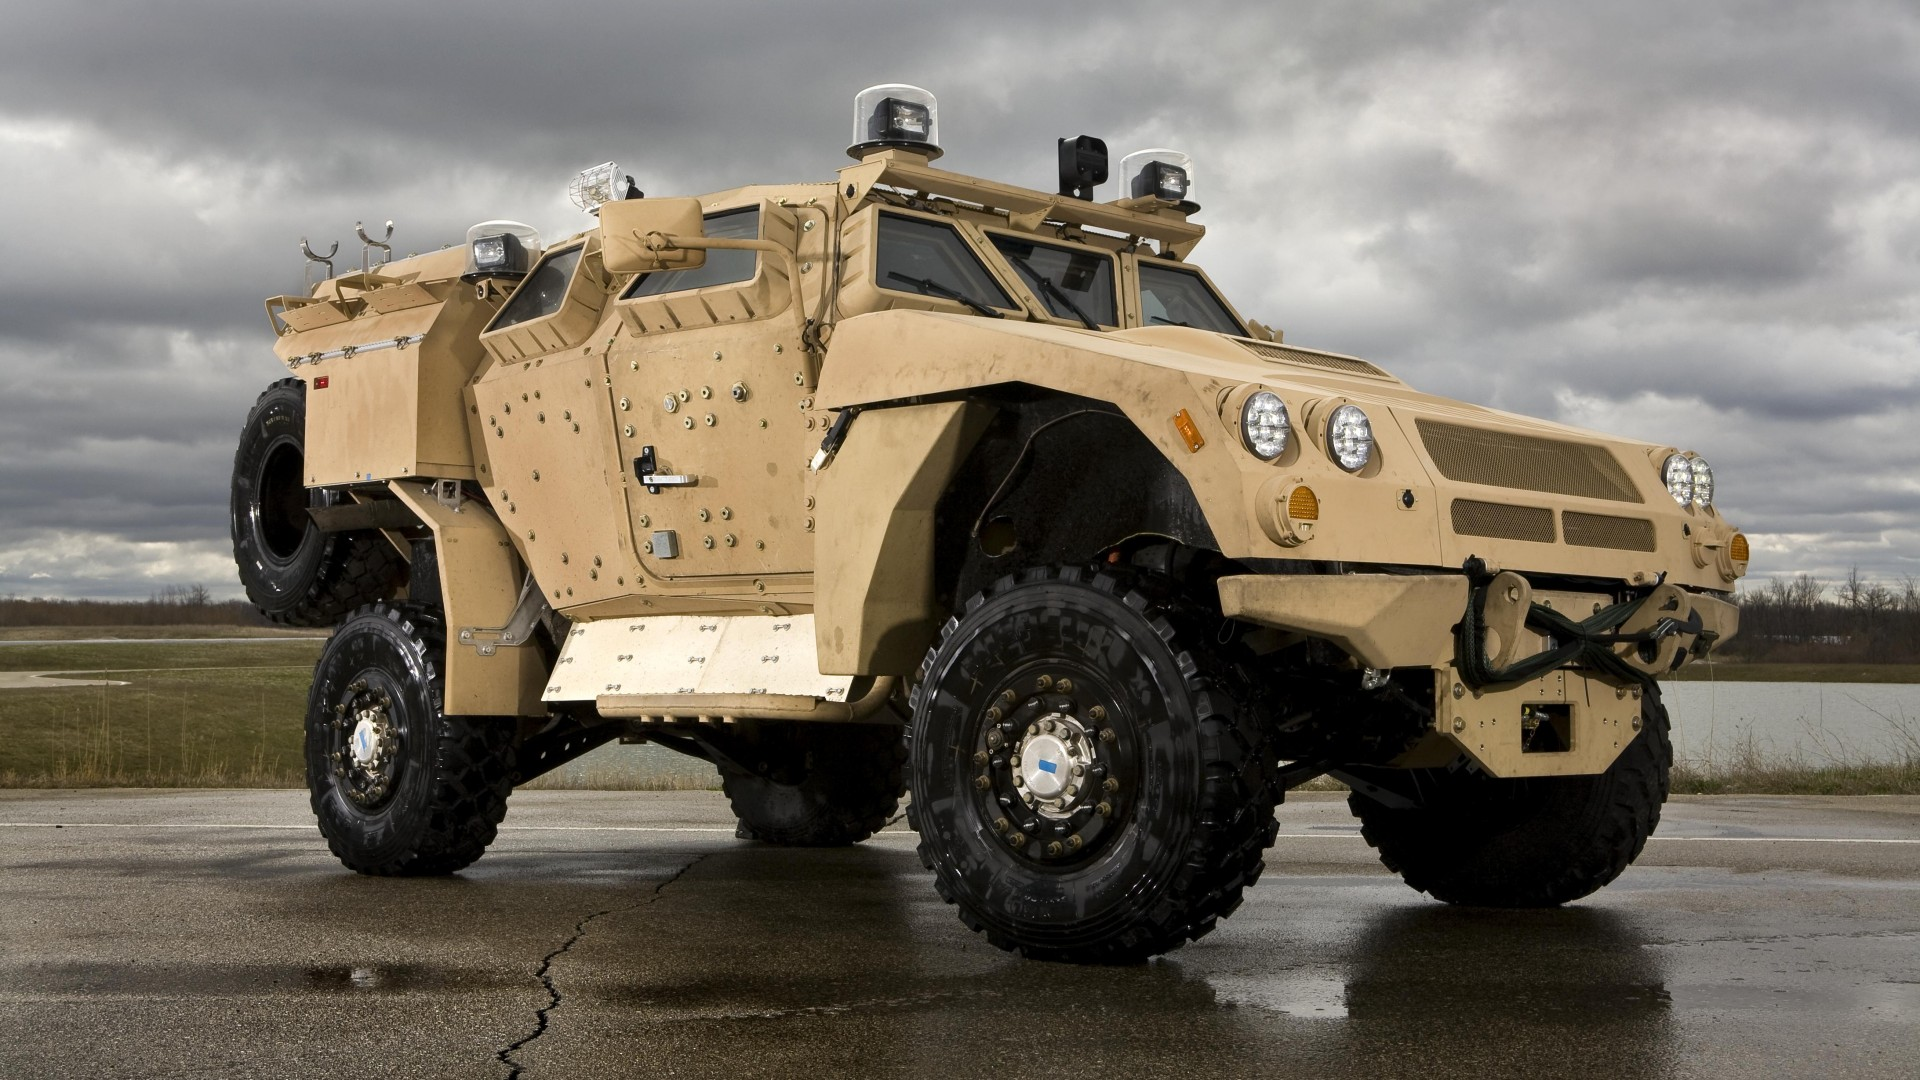 M-ATV, Oshkosh, MRAP, TerraMax, infantry mobility vehicle, runway (horizontal)